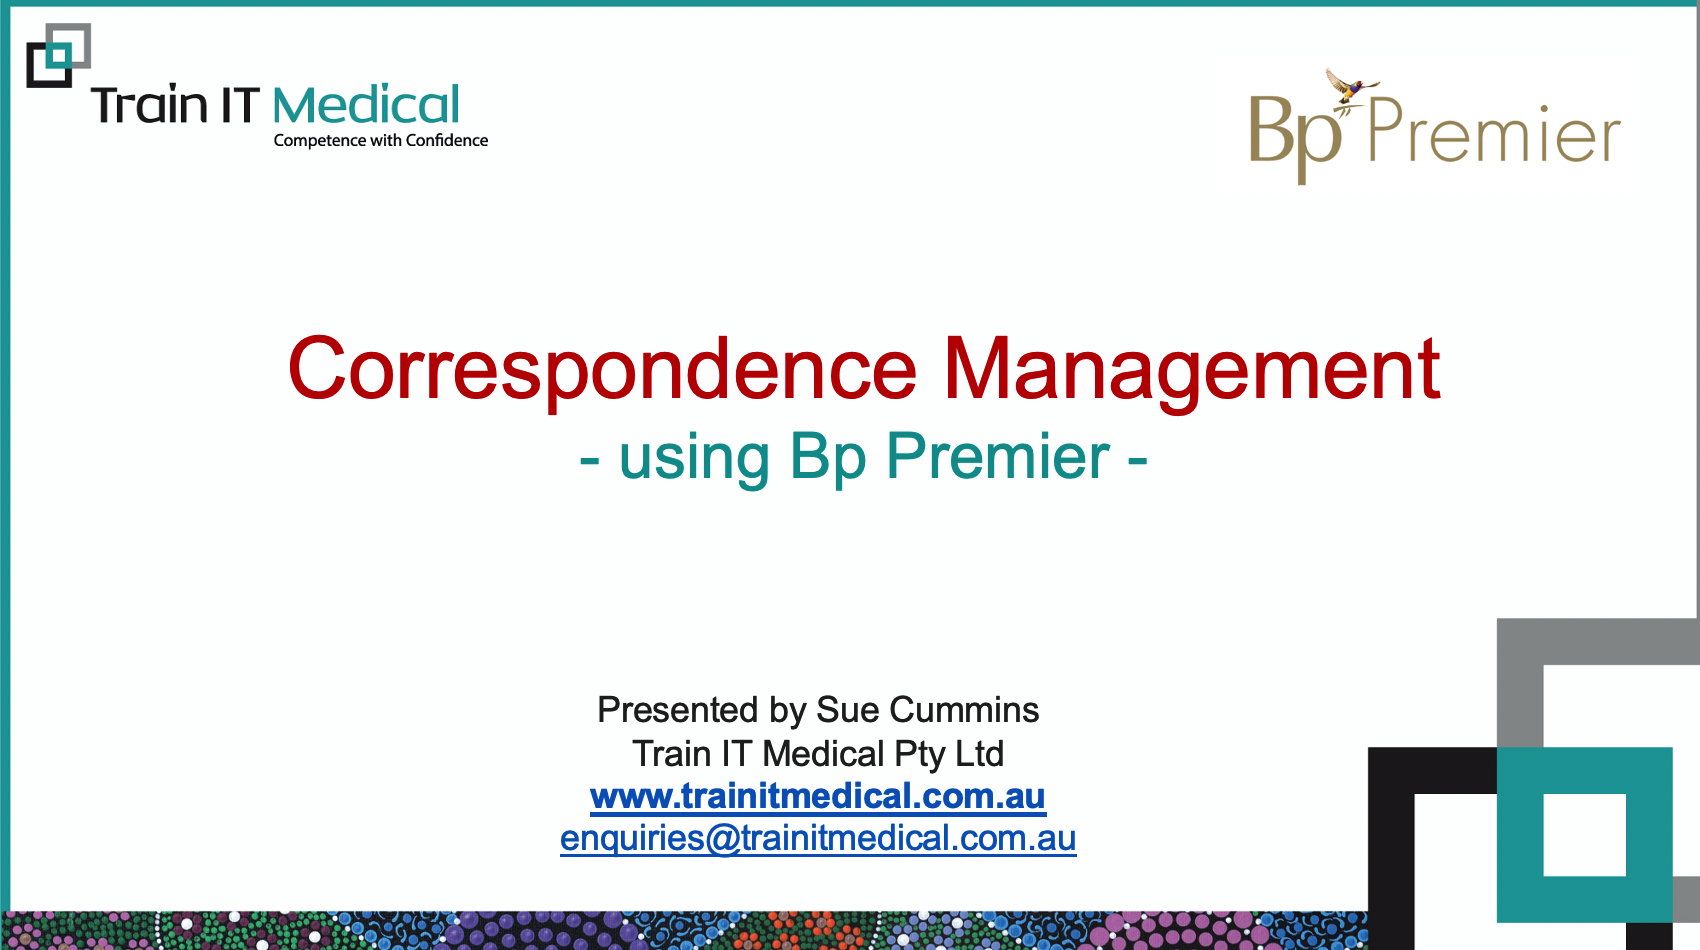 17-Correspondence Management Using Bp Premier